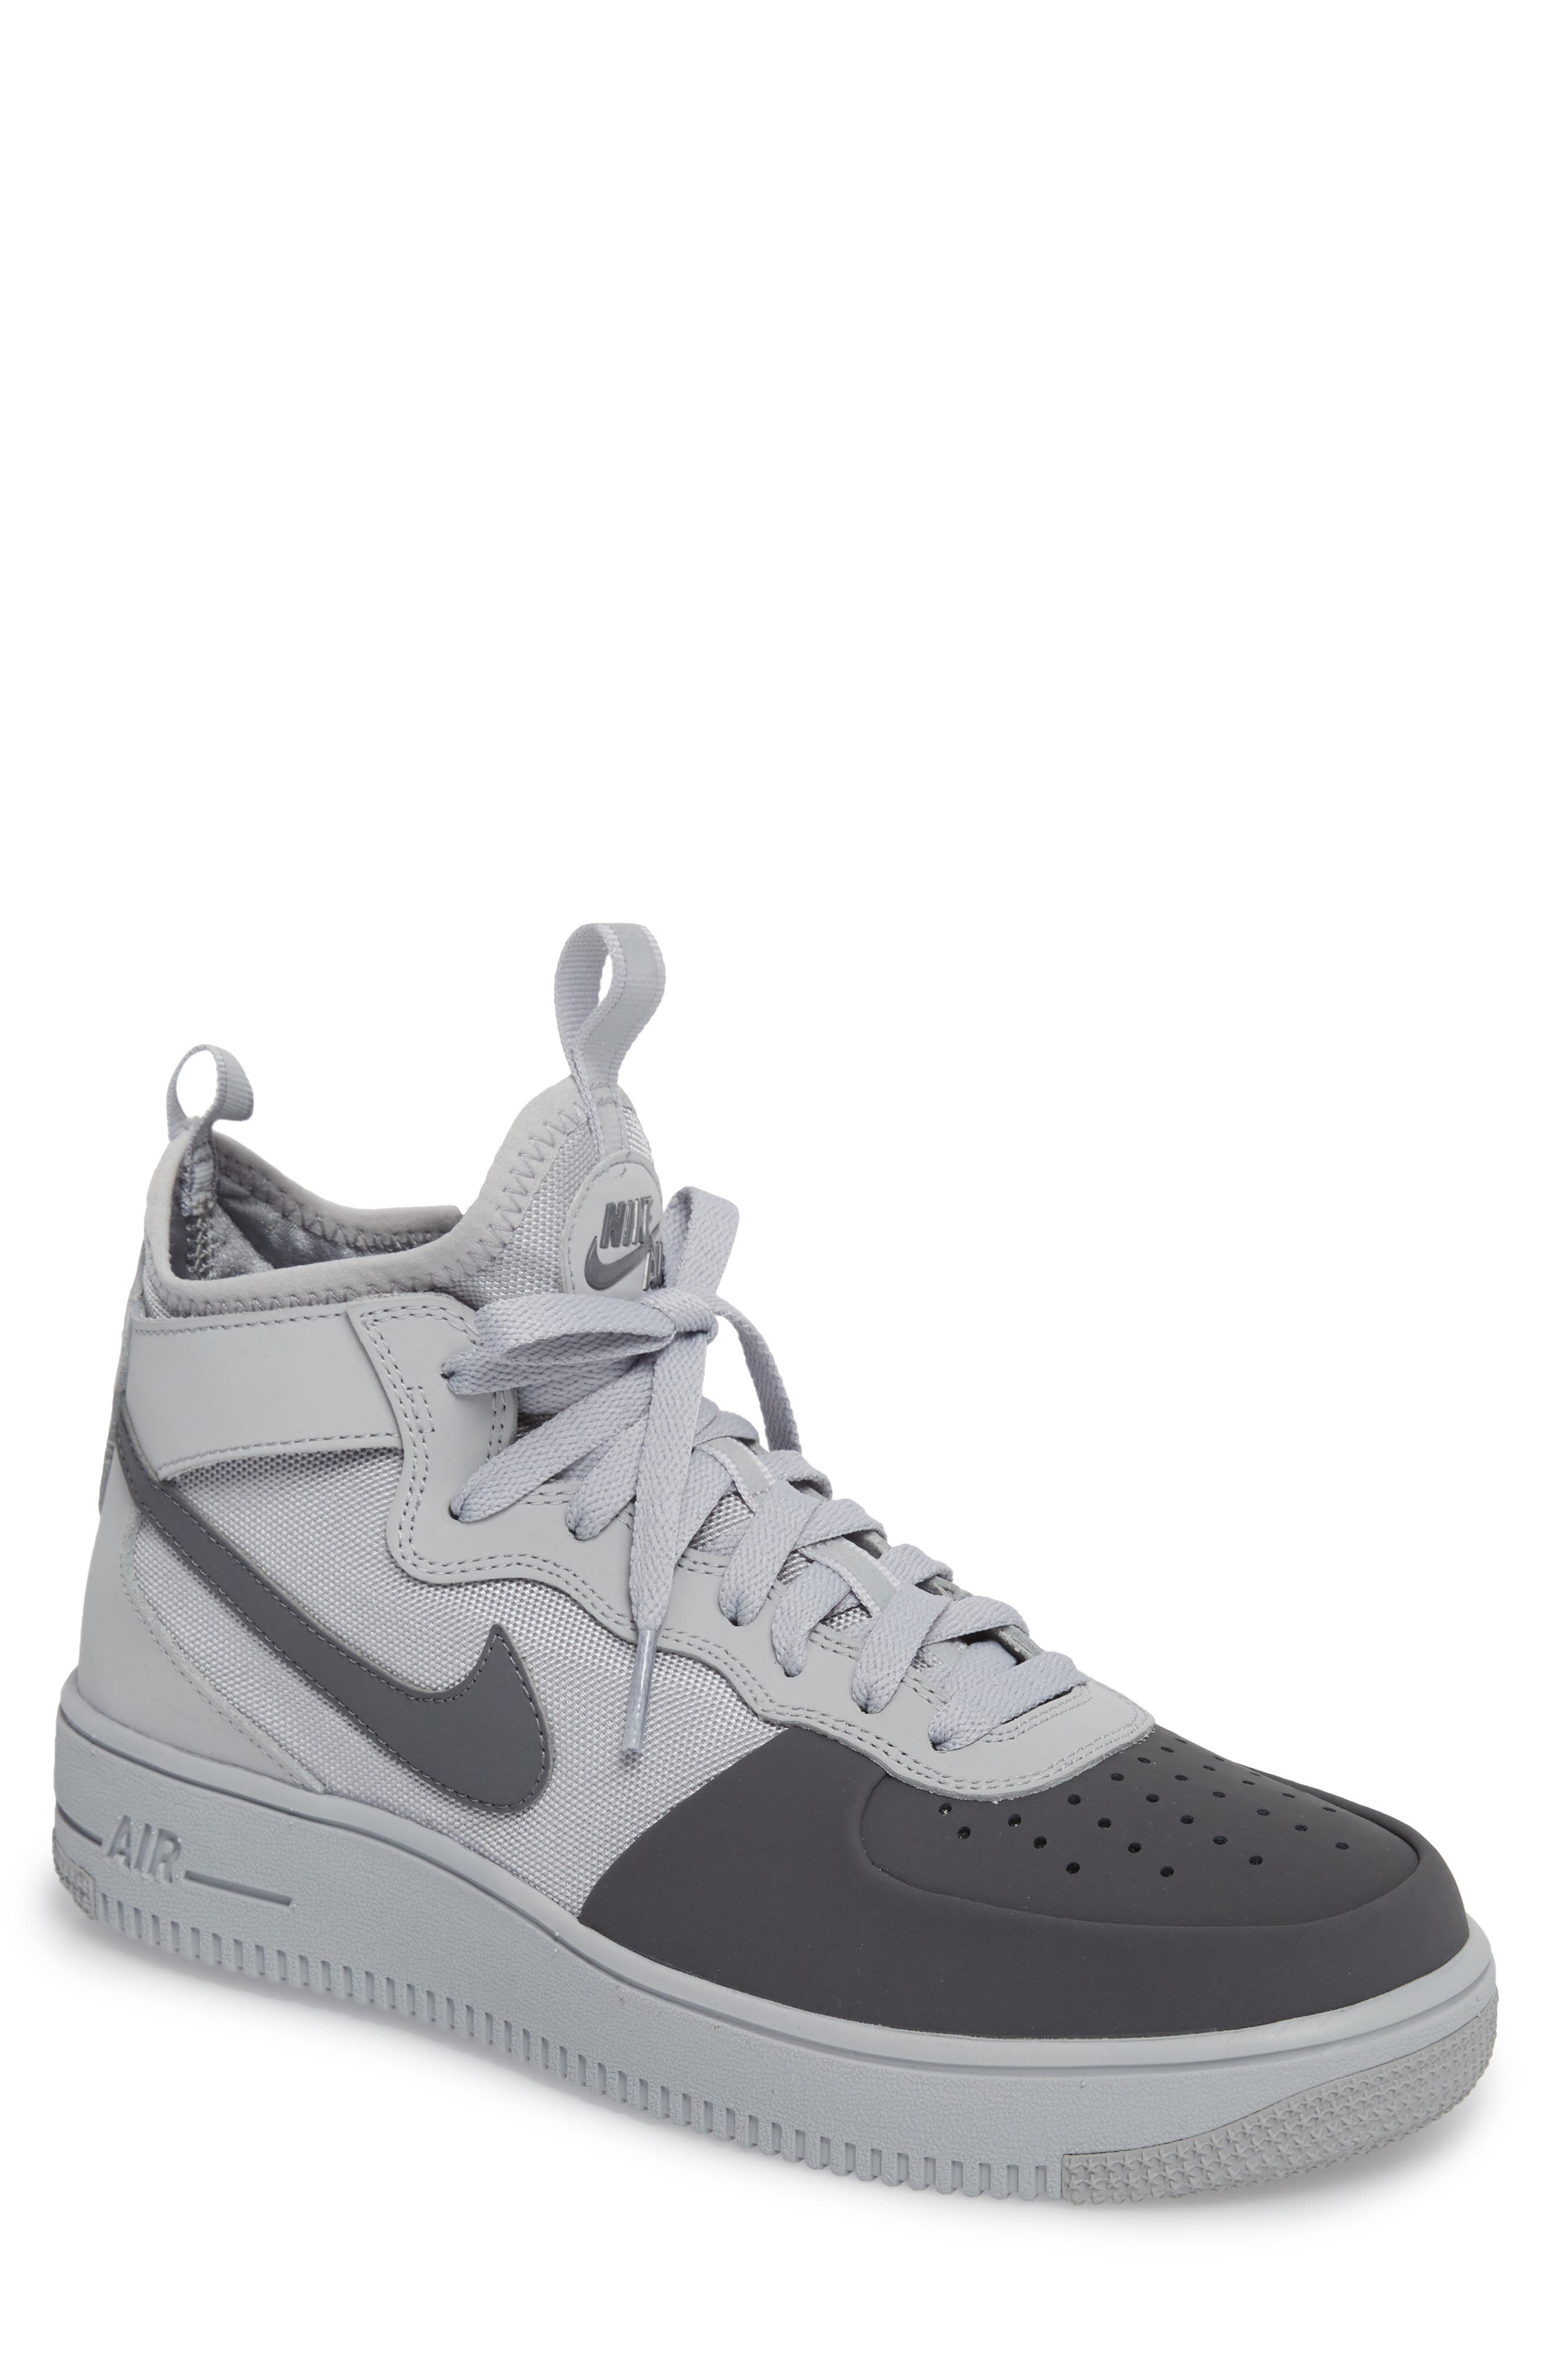 Air Force 1 Ultraforce Mid Tech Sneaker,                         Main,                         color, Wolf Grey/ Dark Grey